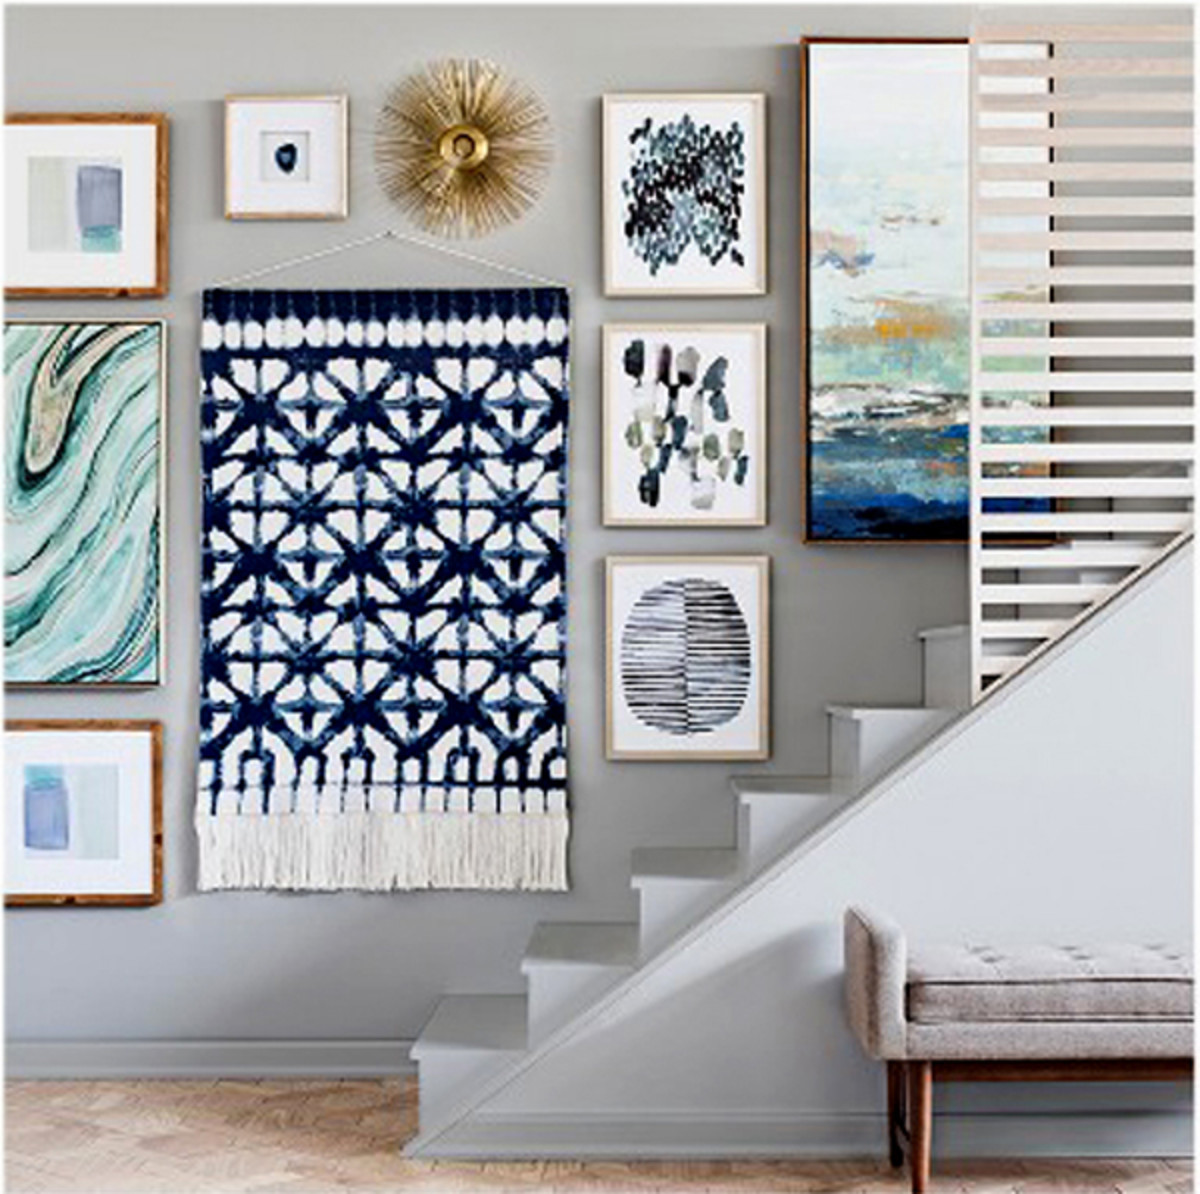 Once you've placed the furniture, add artwork on the walls to help supplement the design layout.